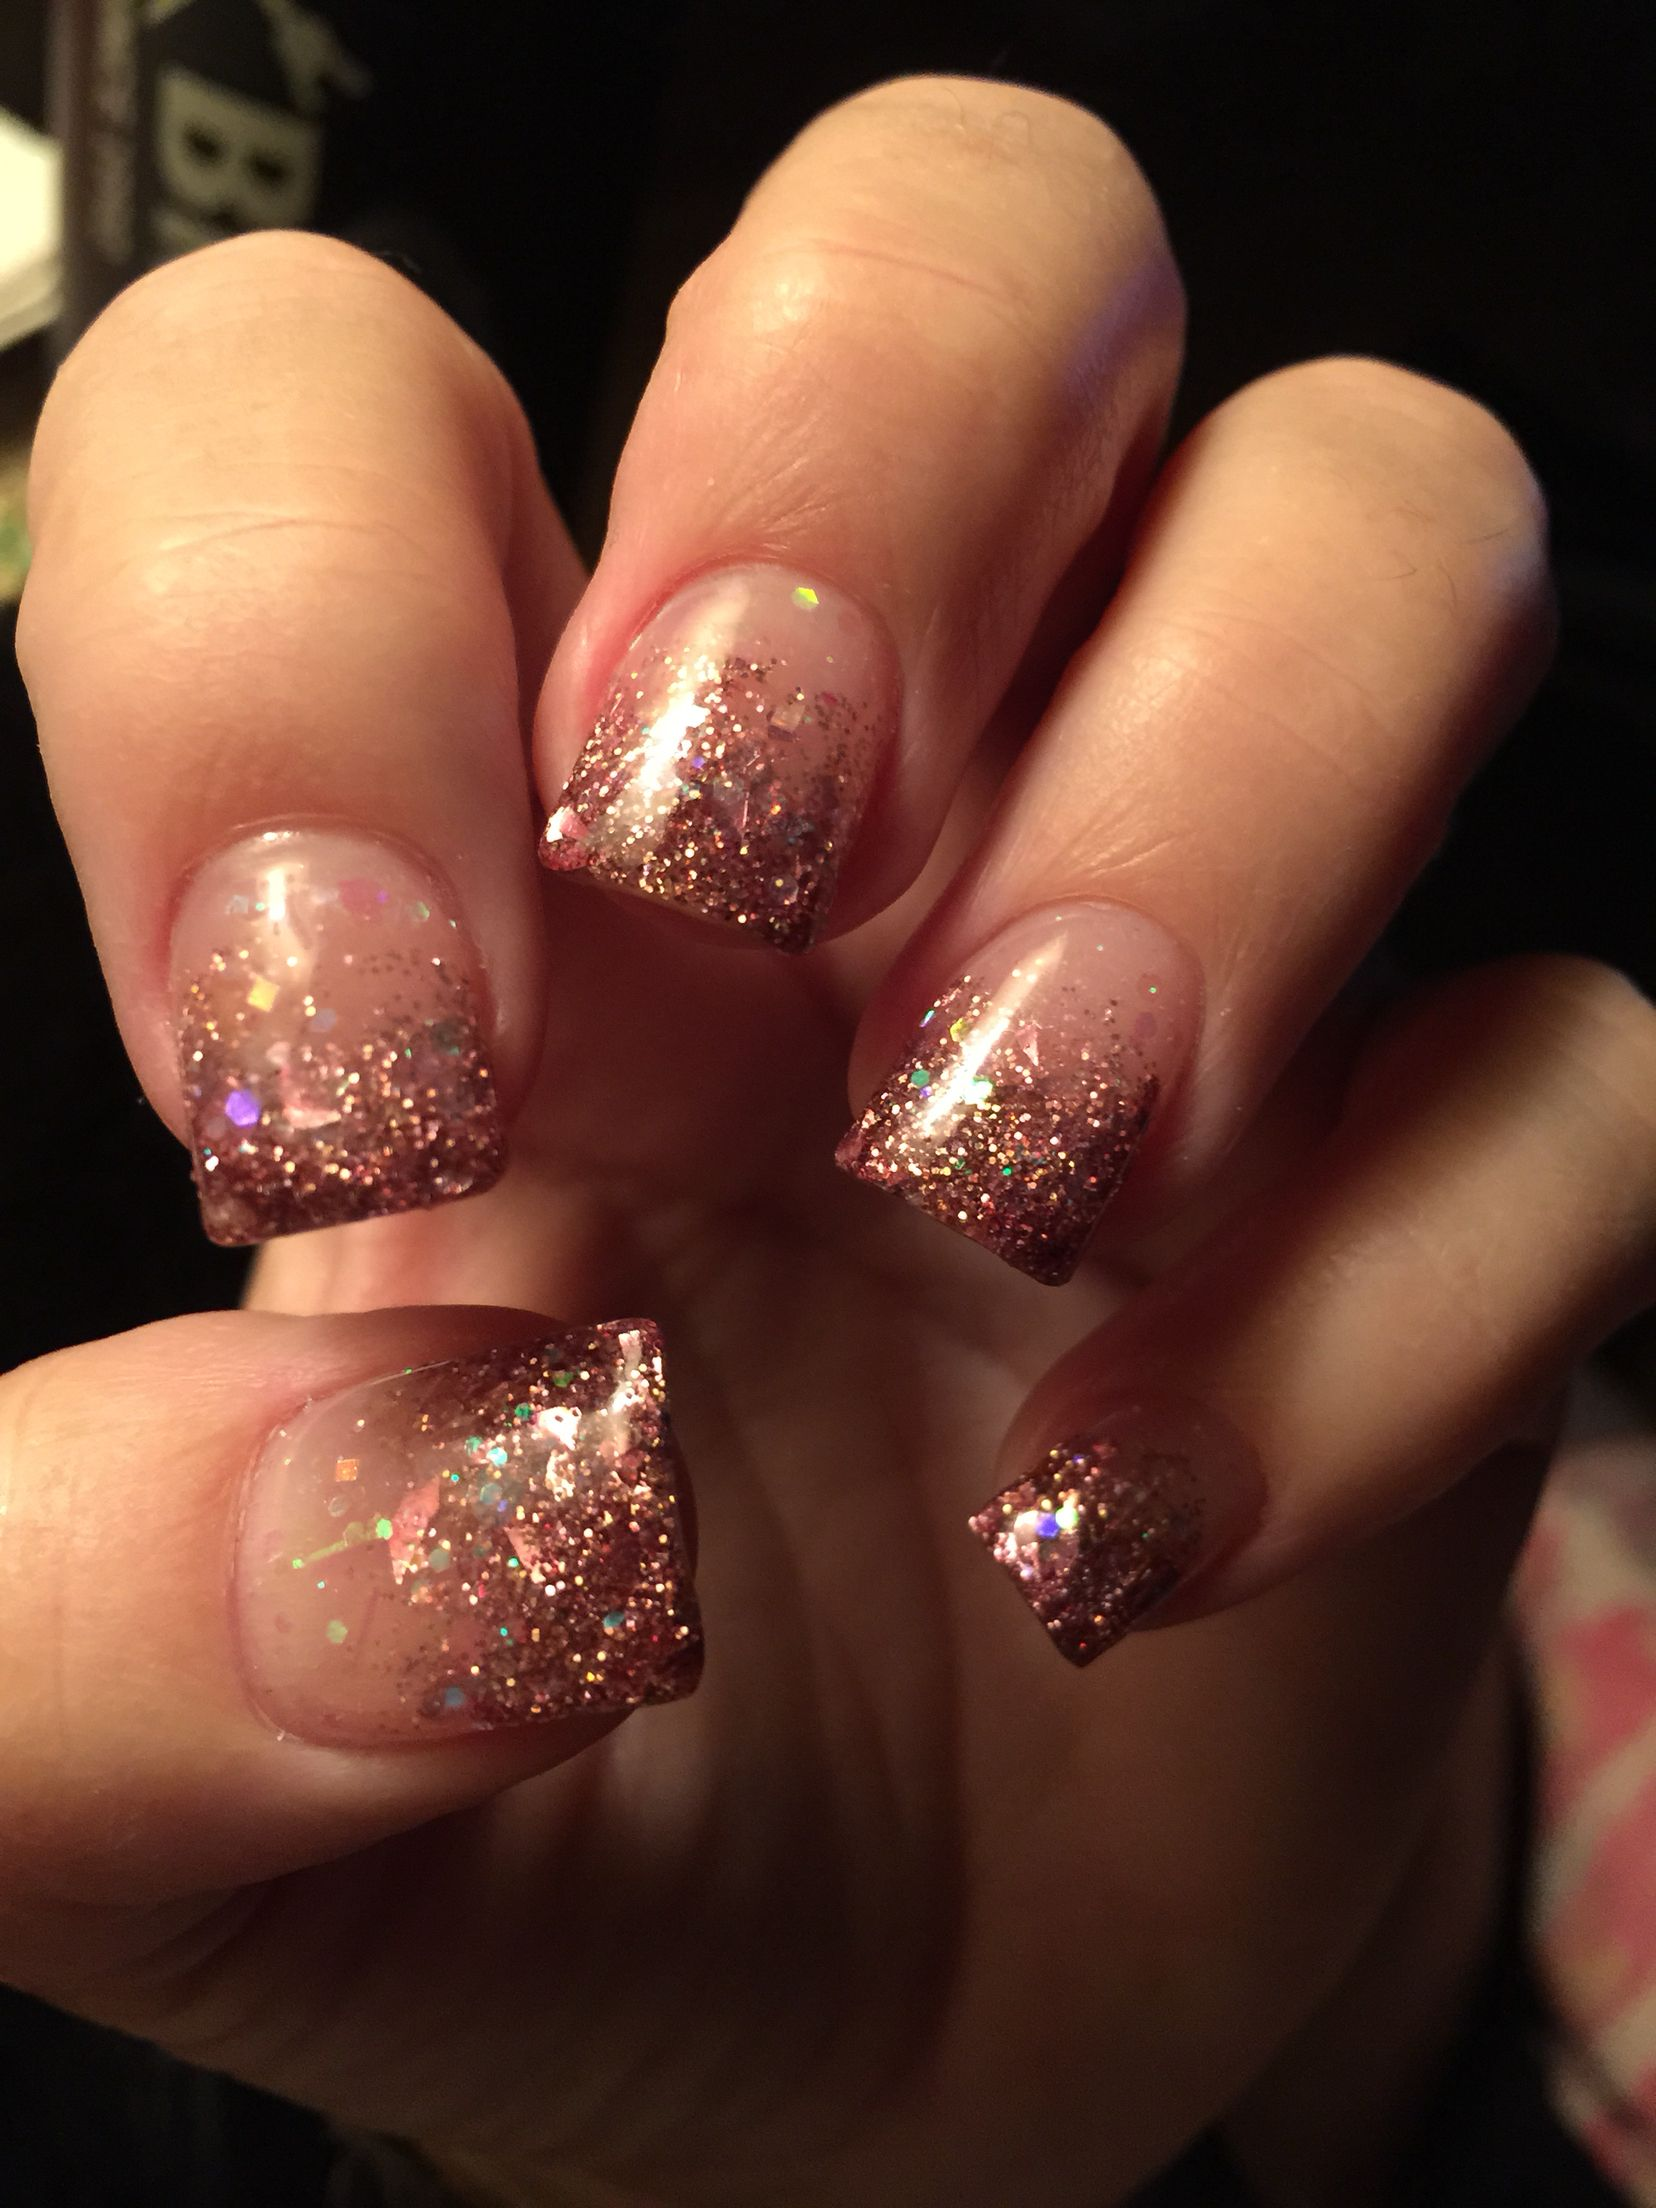 Chic Champagne Colored Faded Acrylic Nails Fall Acrylic Nails Sparkle Nails Holiday Nails